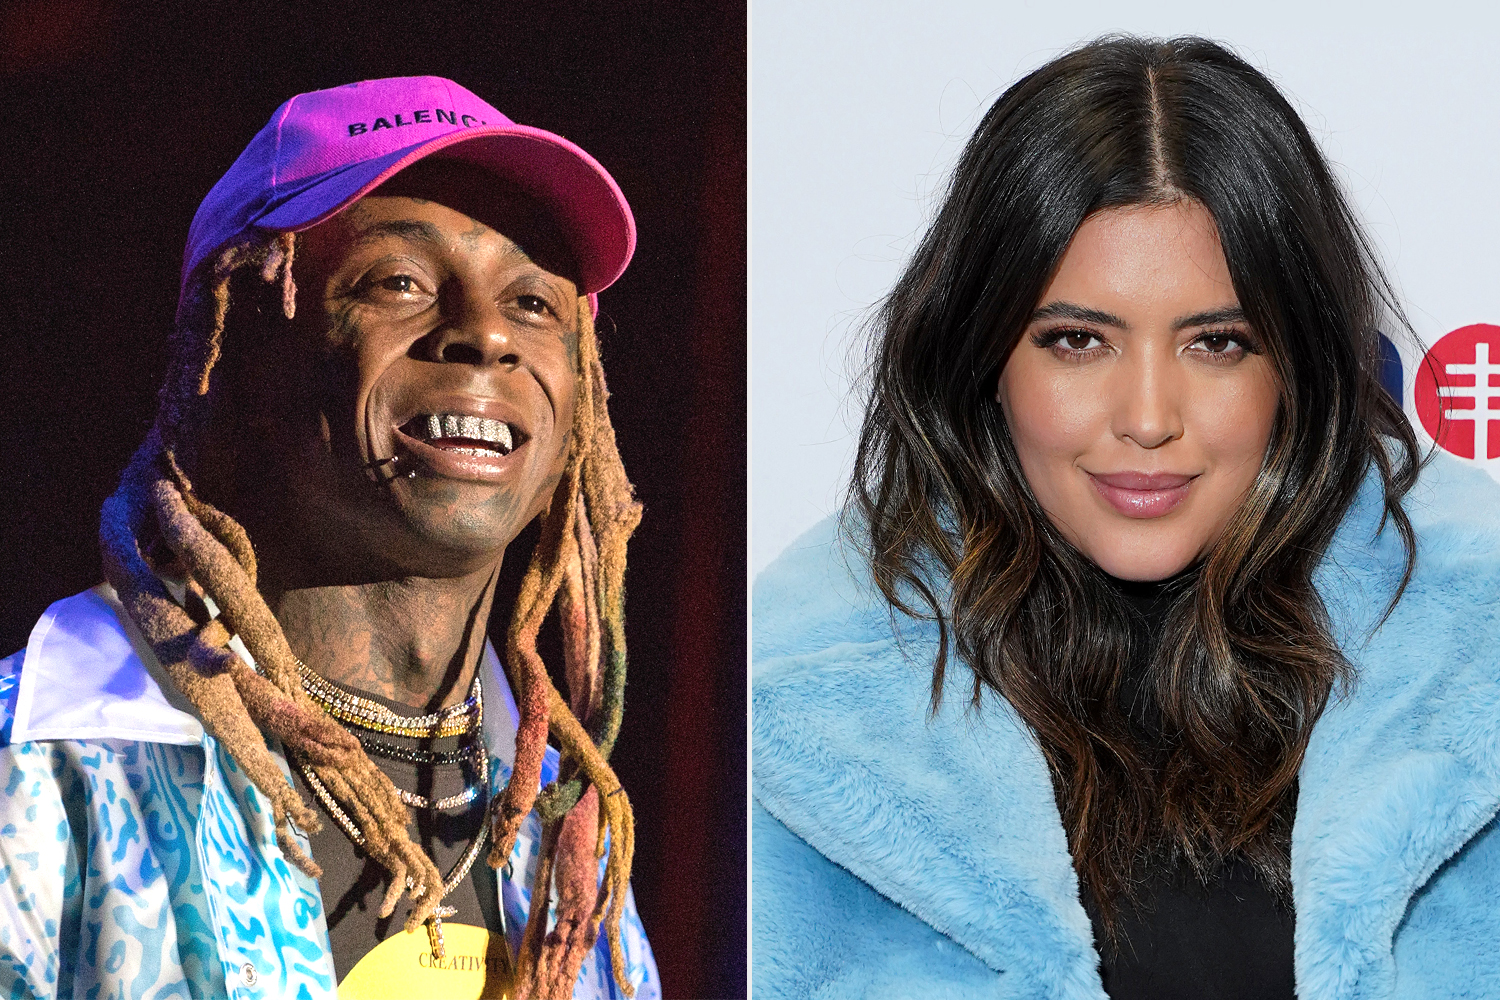 Lil Wayne Sparks Marriage Rumors with Girlfriend Denise Bidot on Twitter: 'Start of Our Forever'